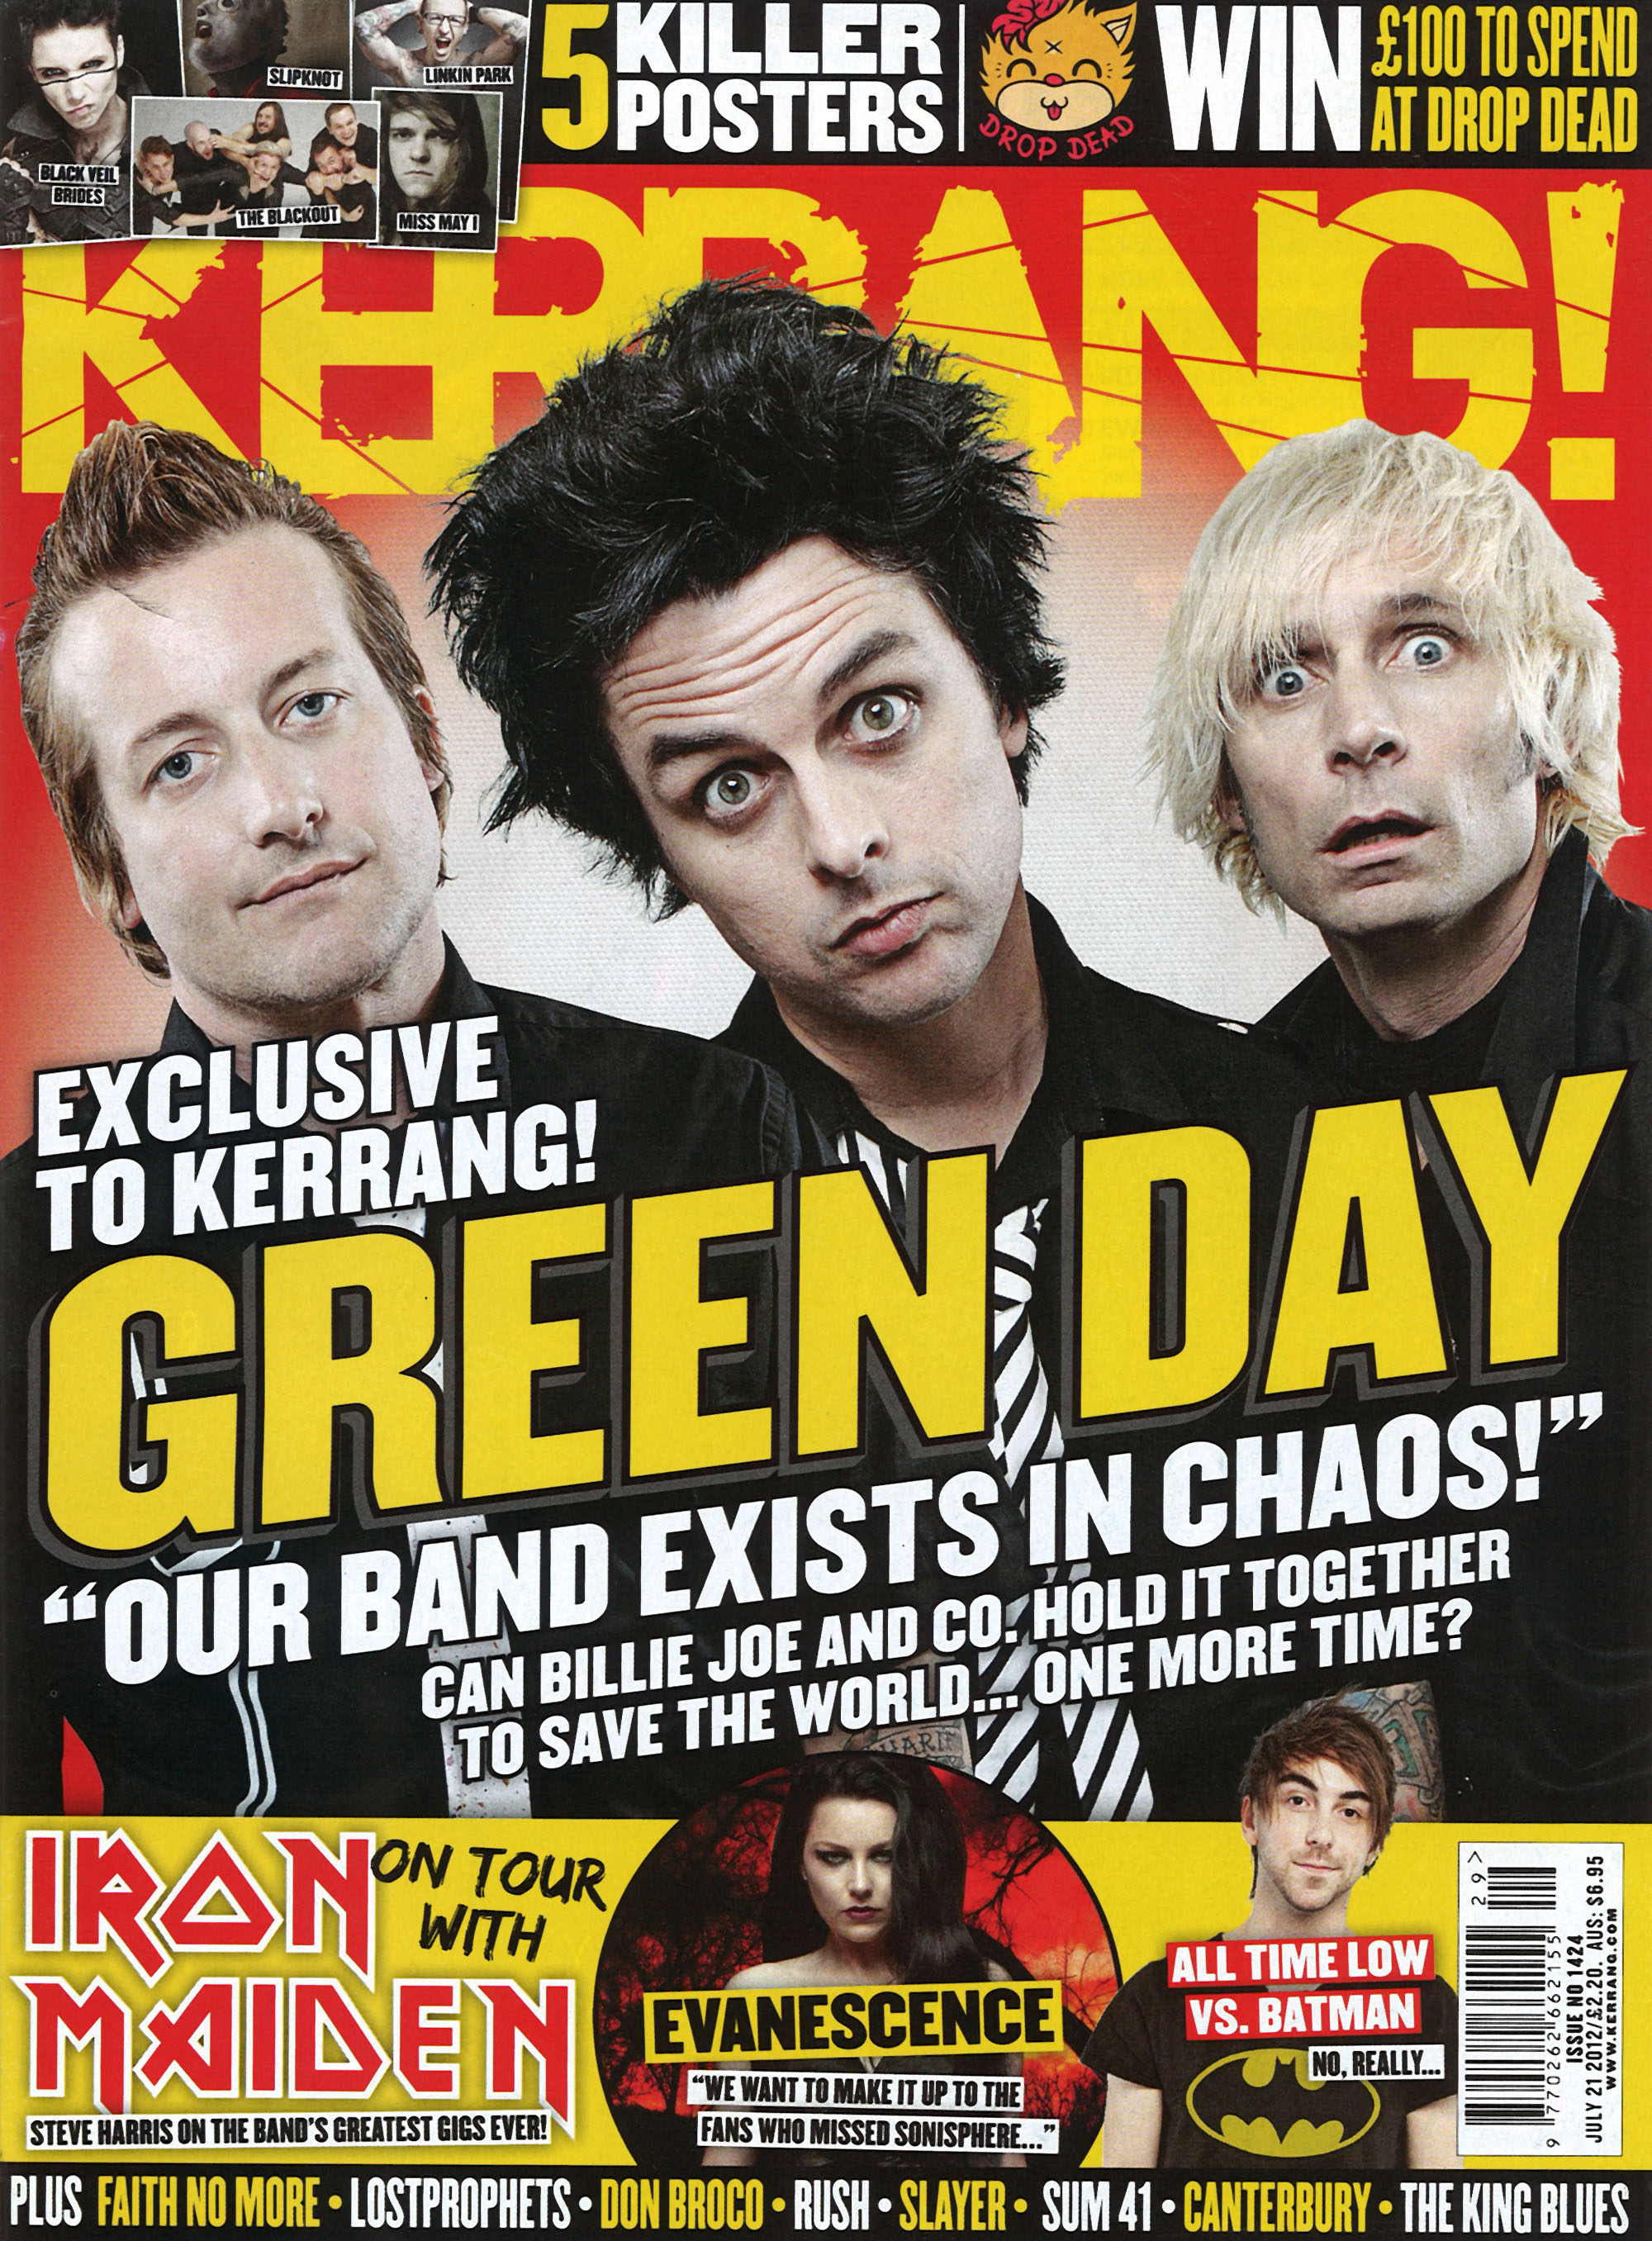 Conquering Mount Rush-More - Kerrang! Magazine - July 21st, 2012